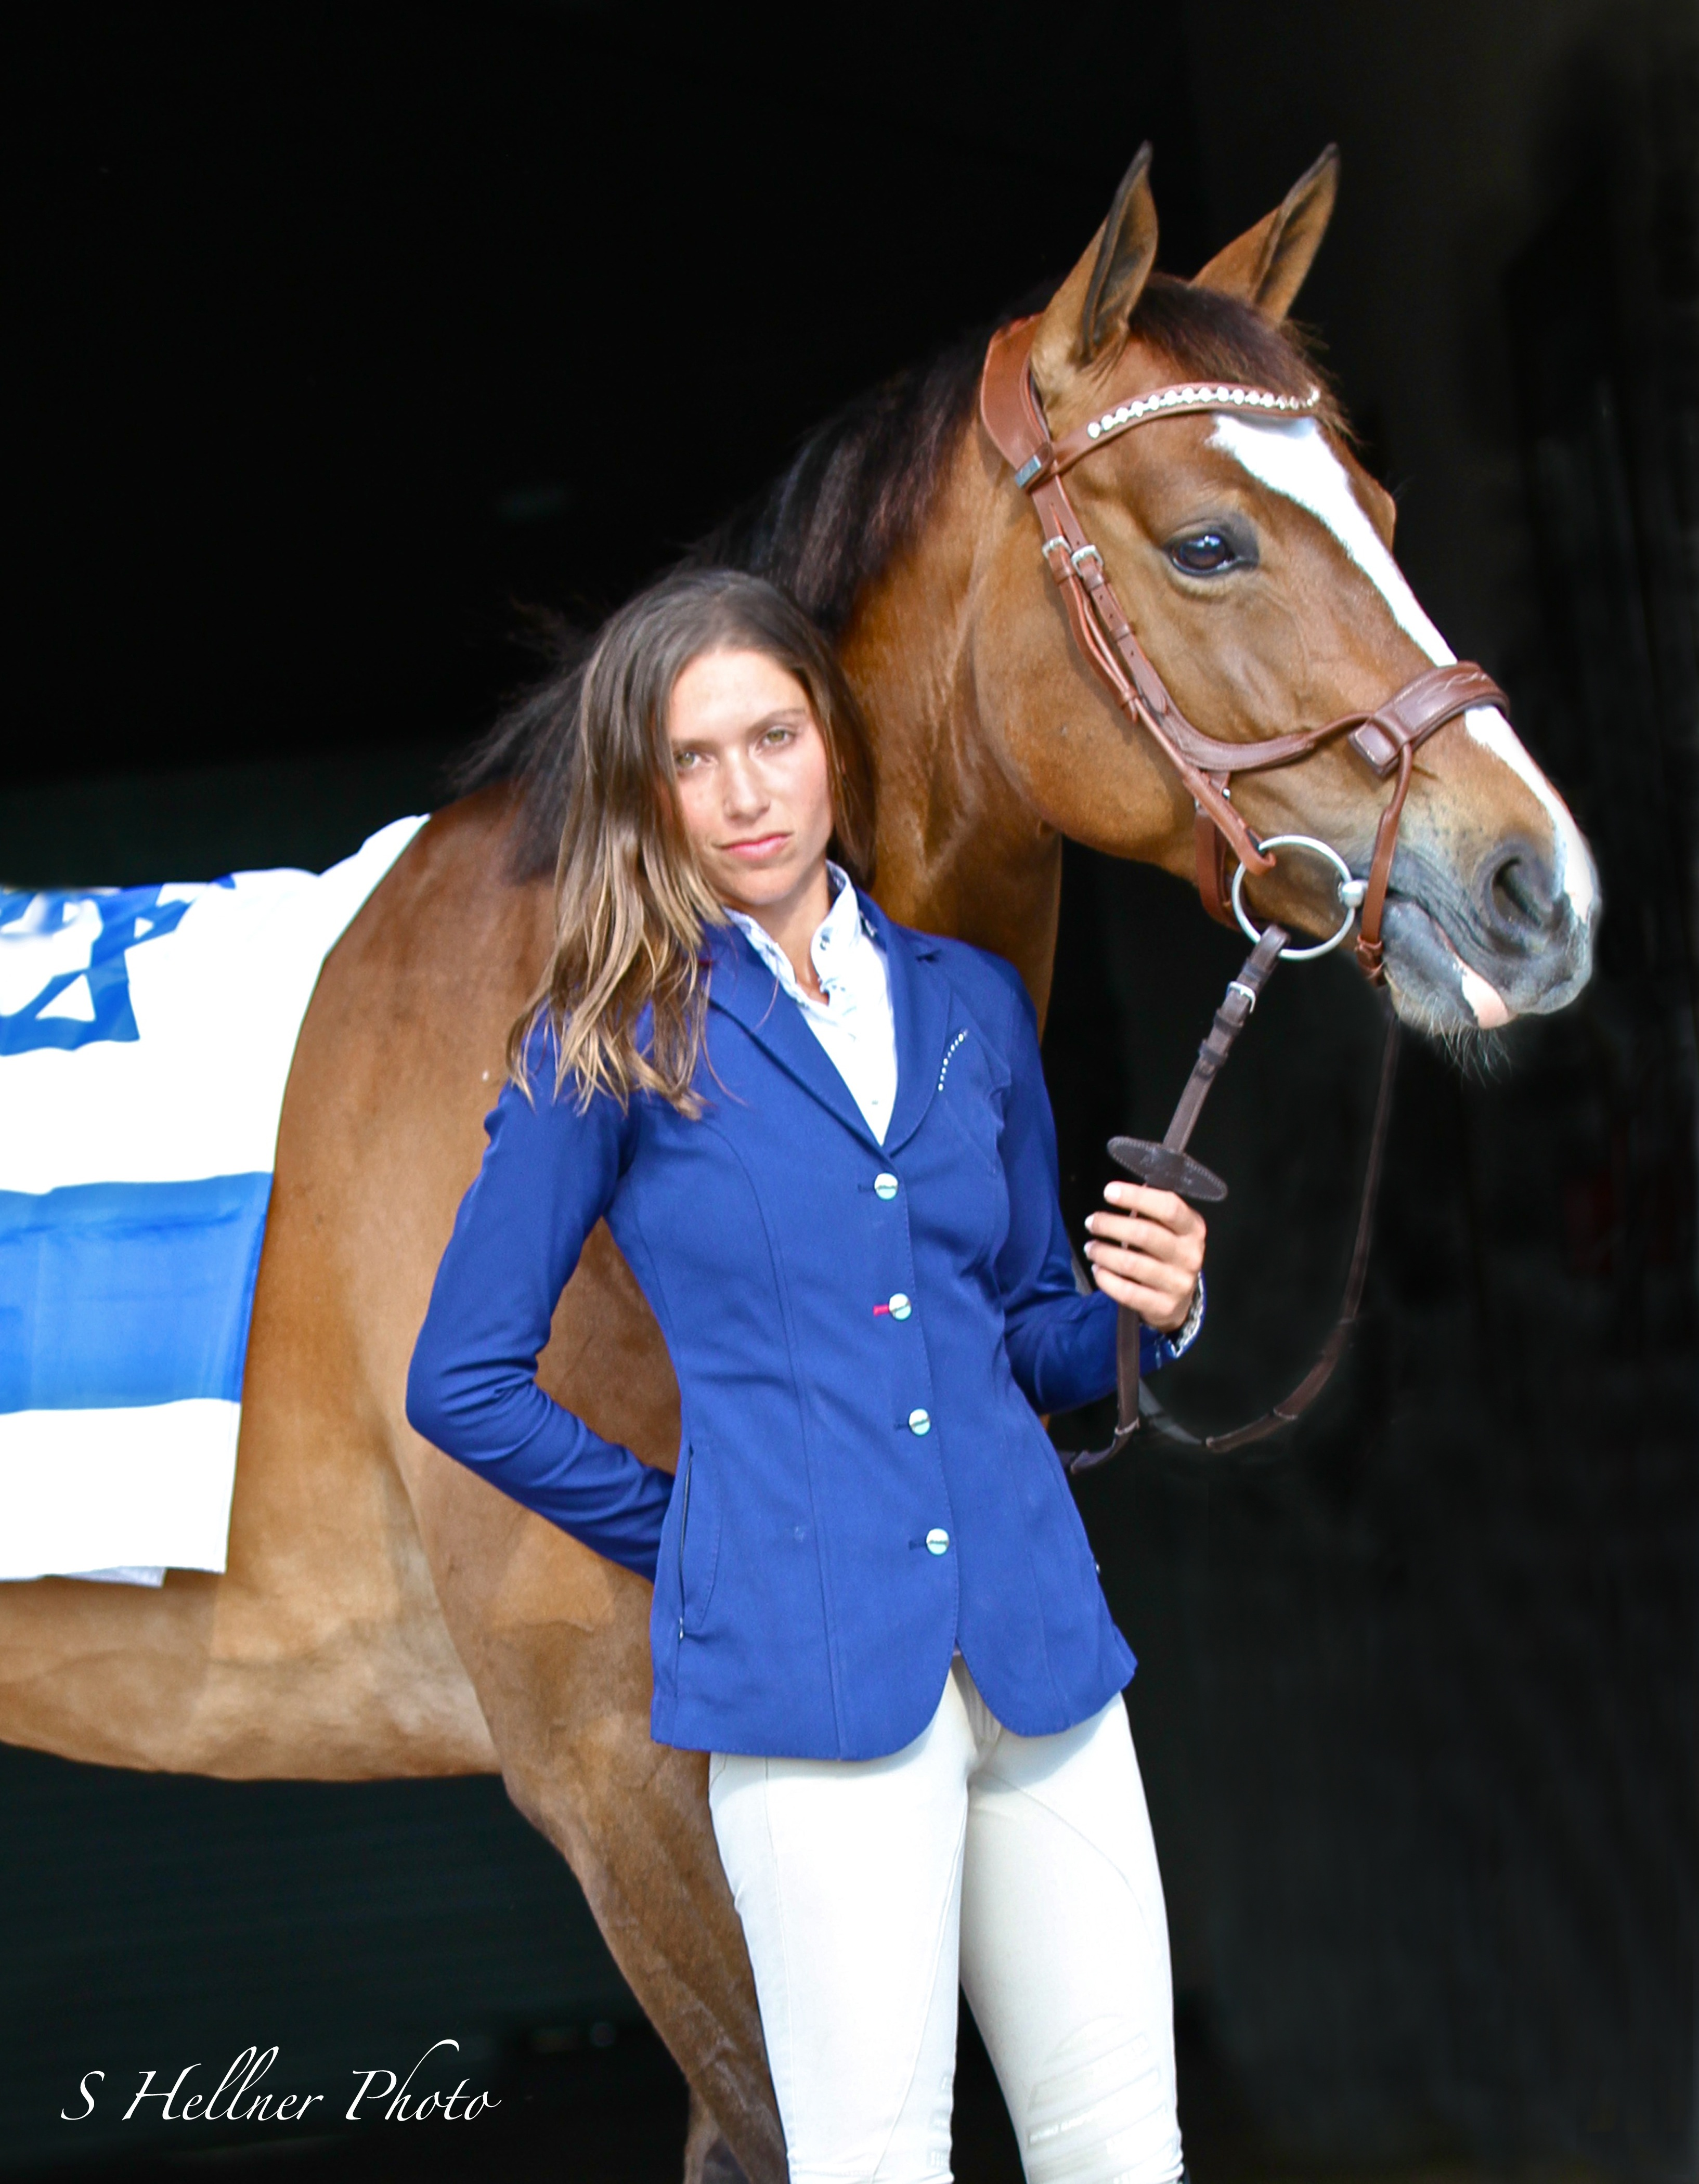 As the National Champion of Israel in Show Jumping, Nataly shows off the Israeli flag. (Photo by S Hellner Photography, Shellner.Photoshelter.com)